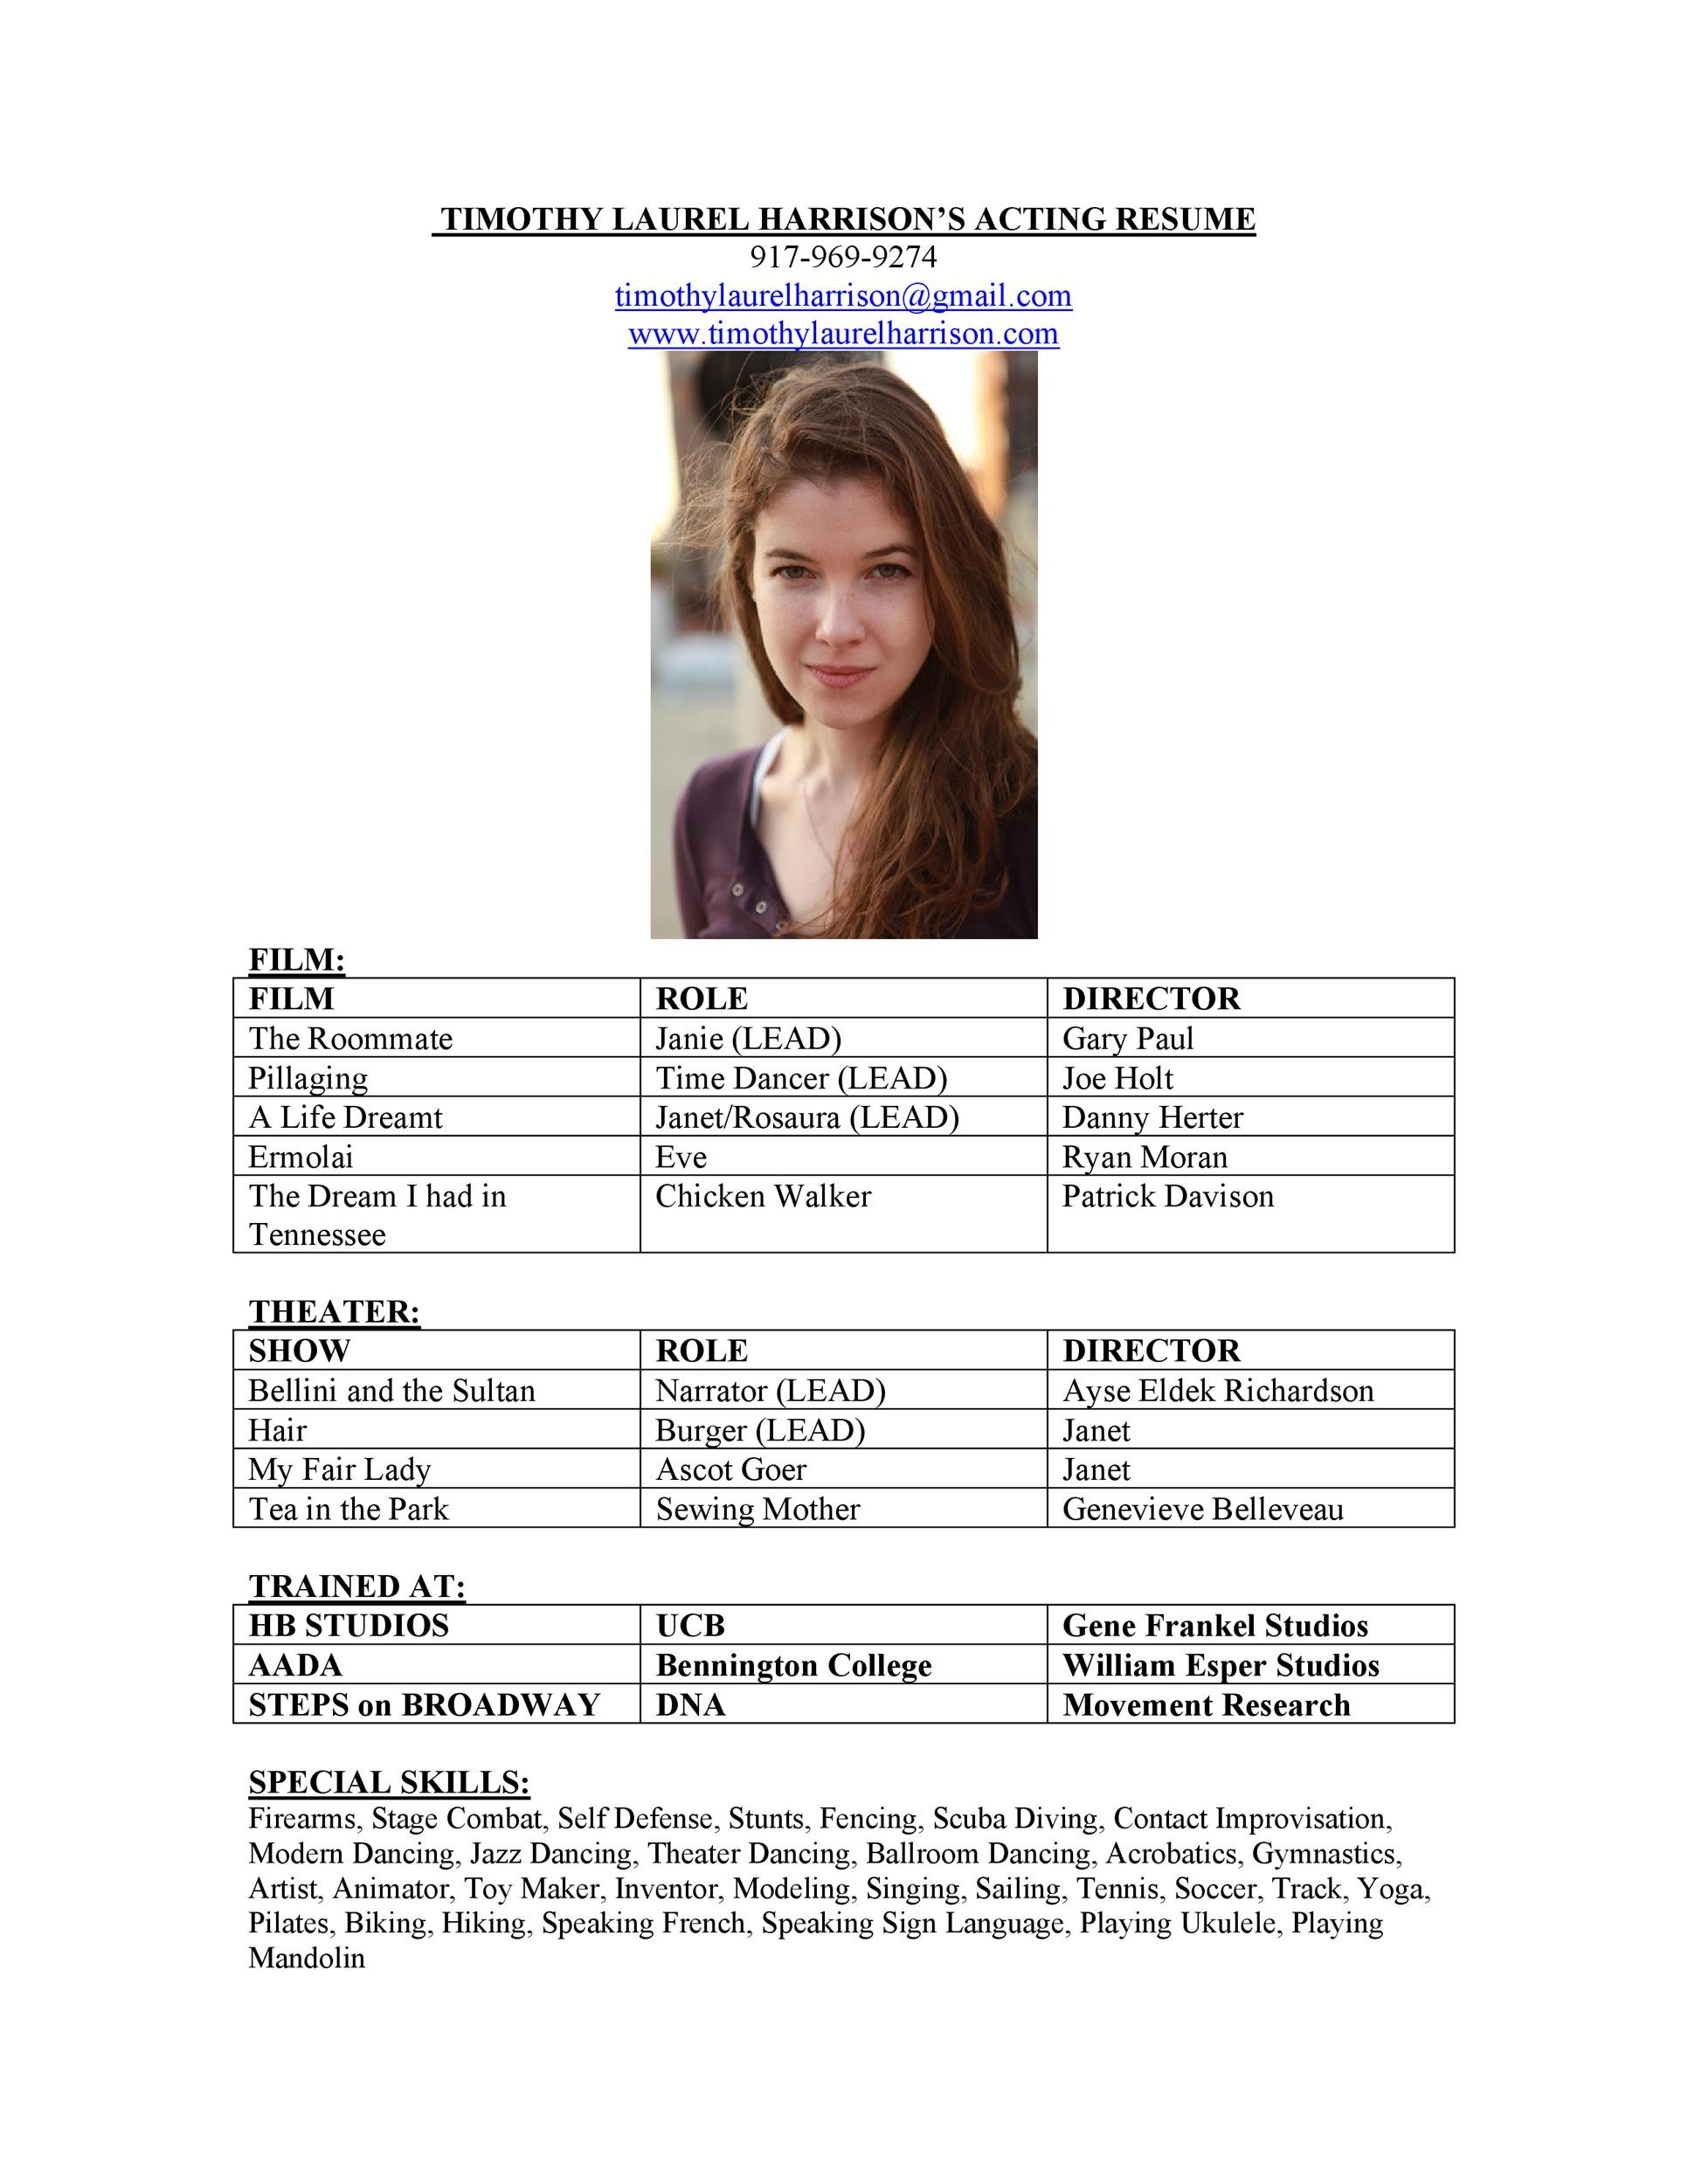 Free acting resume template 23